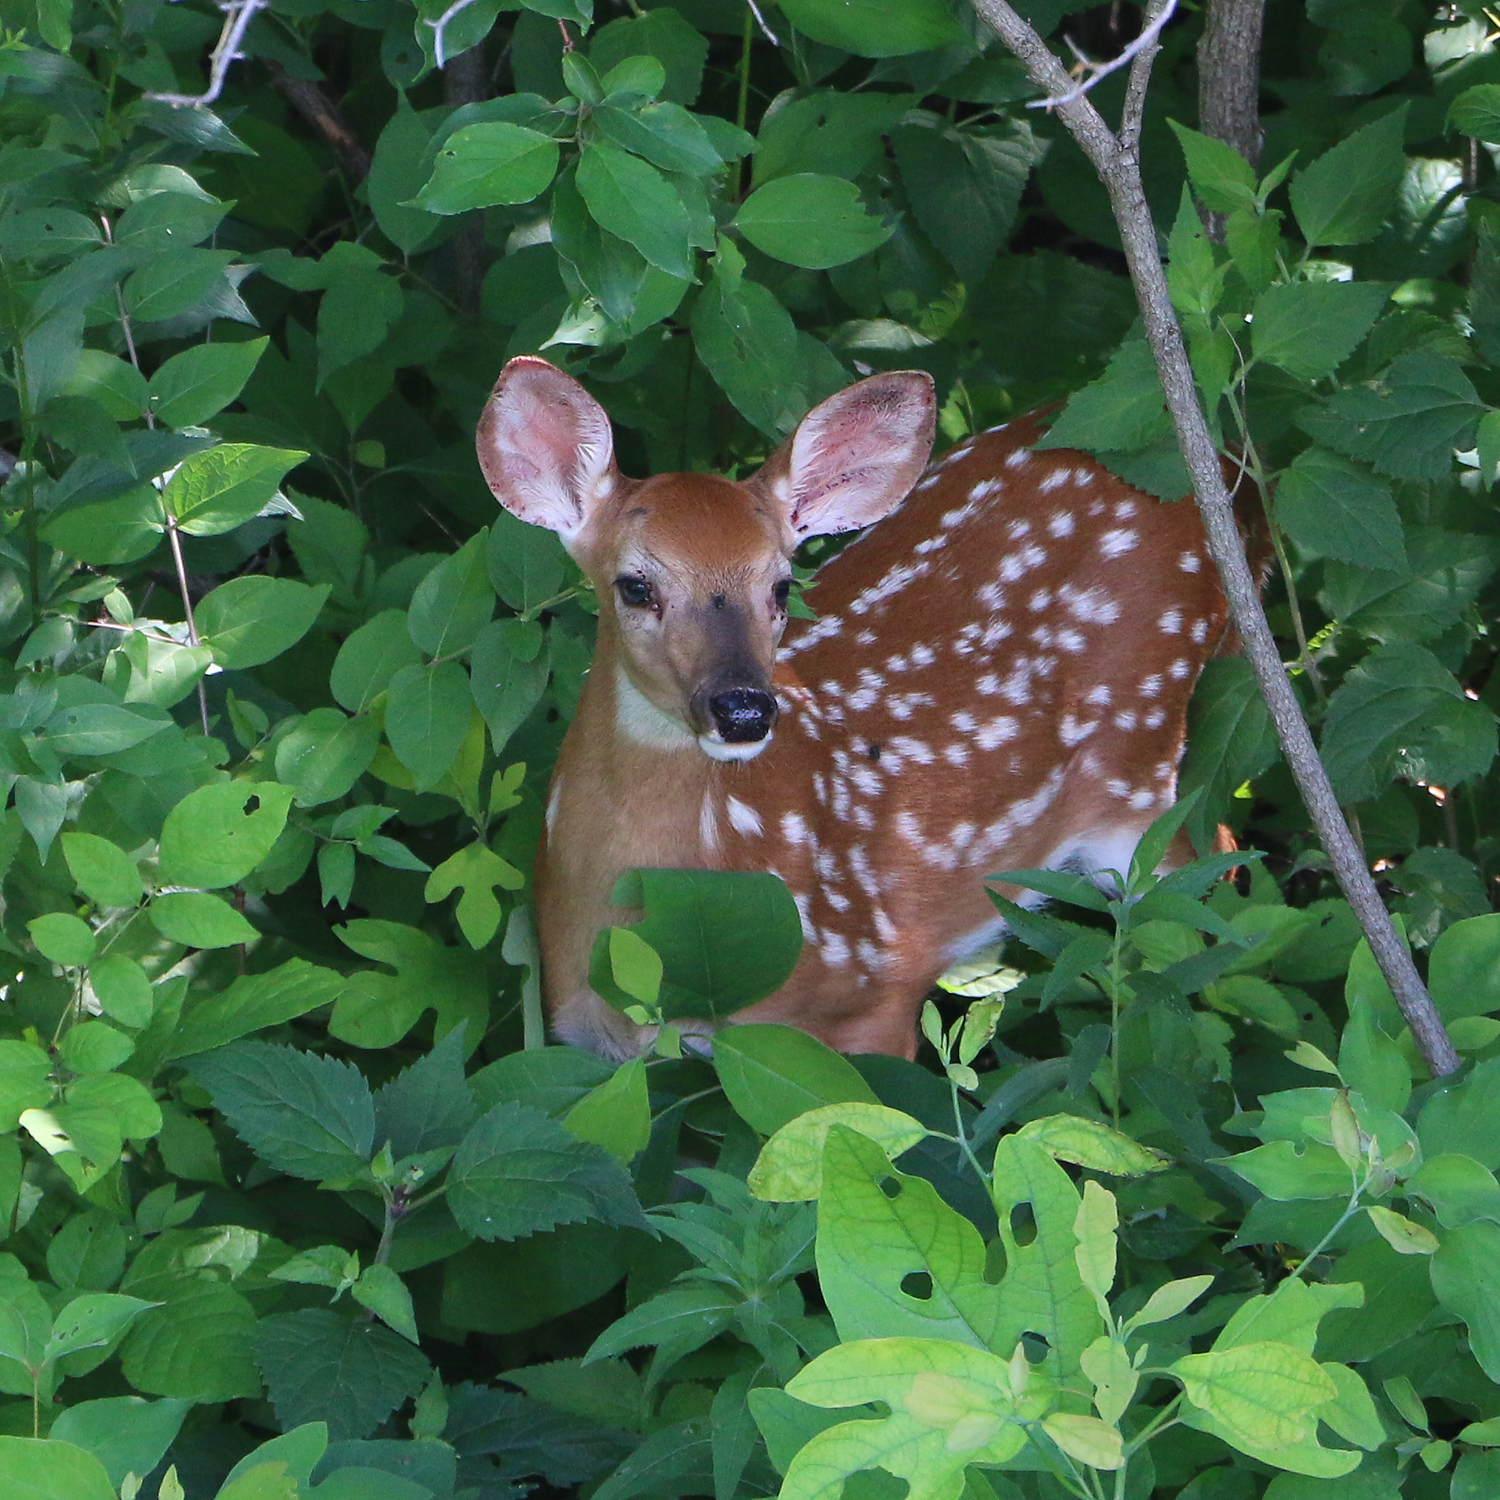 A fawn with reddish, tan fur with white spots hides amongst green, leafy vegetation.